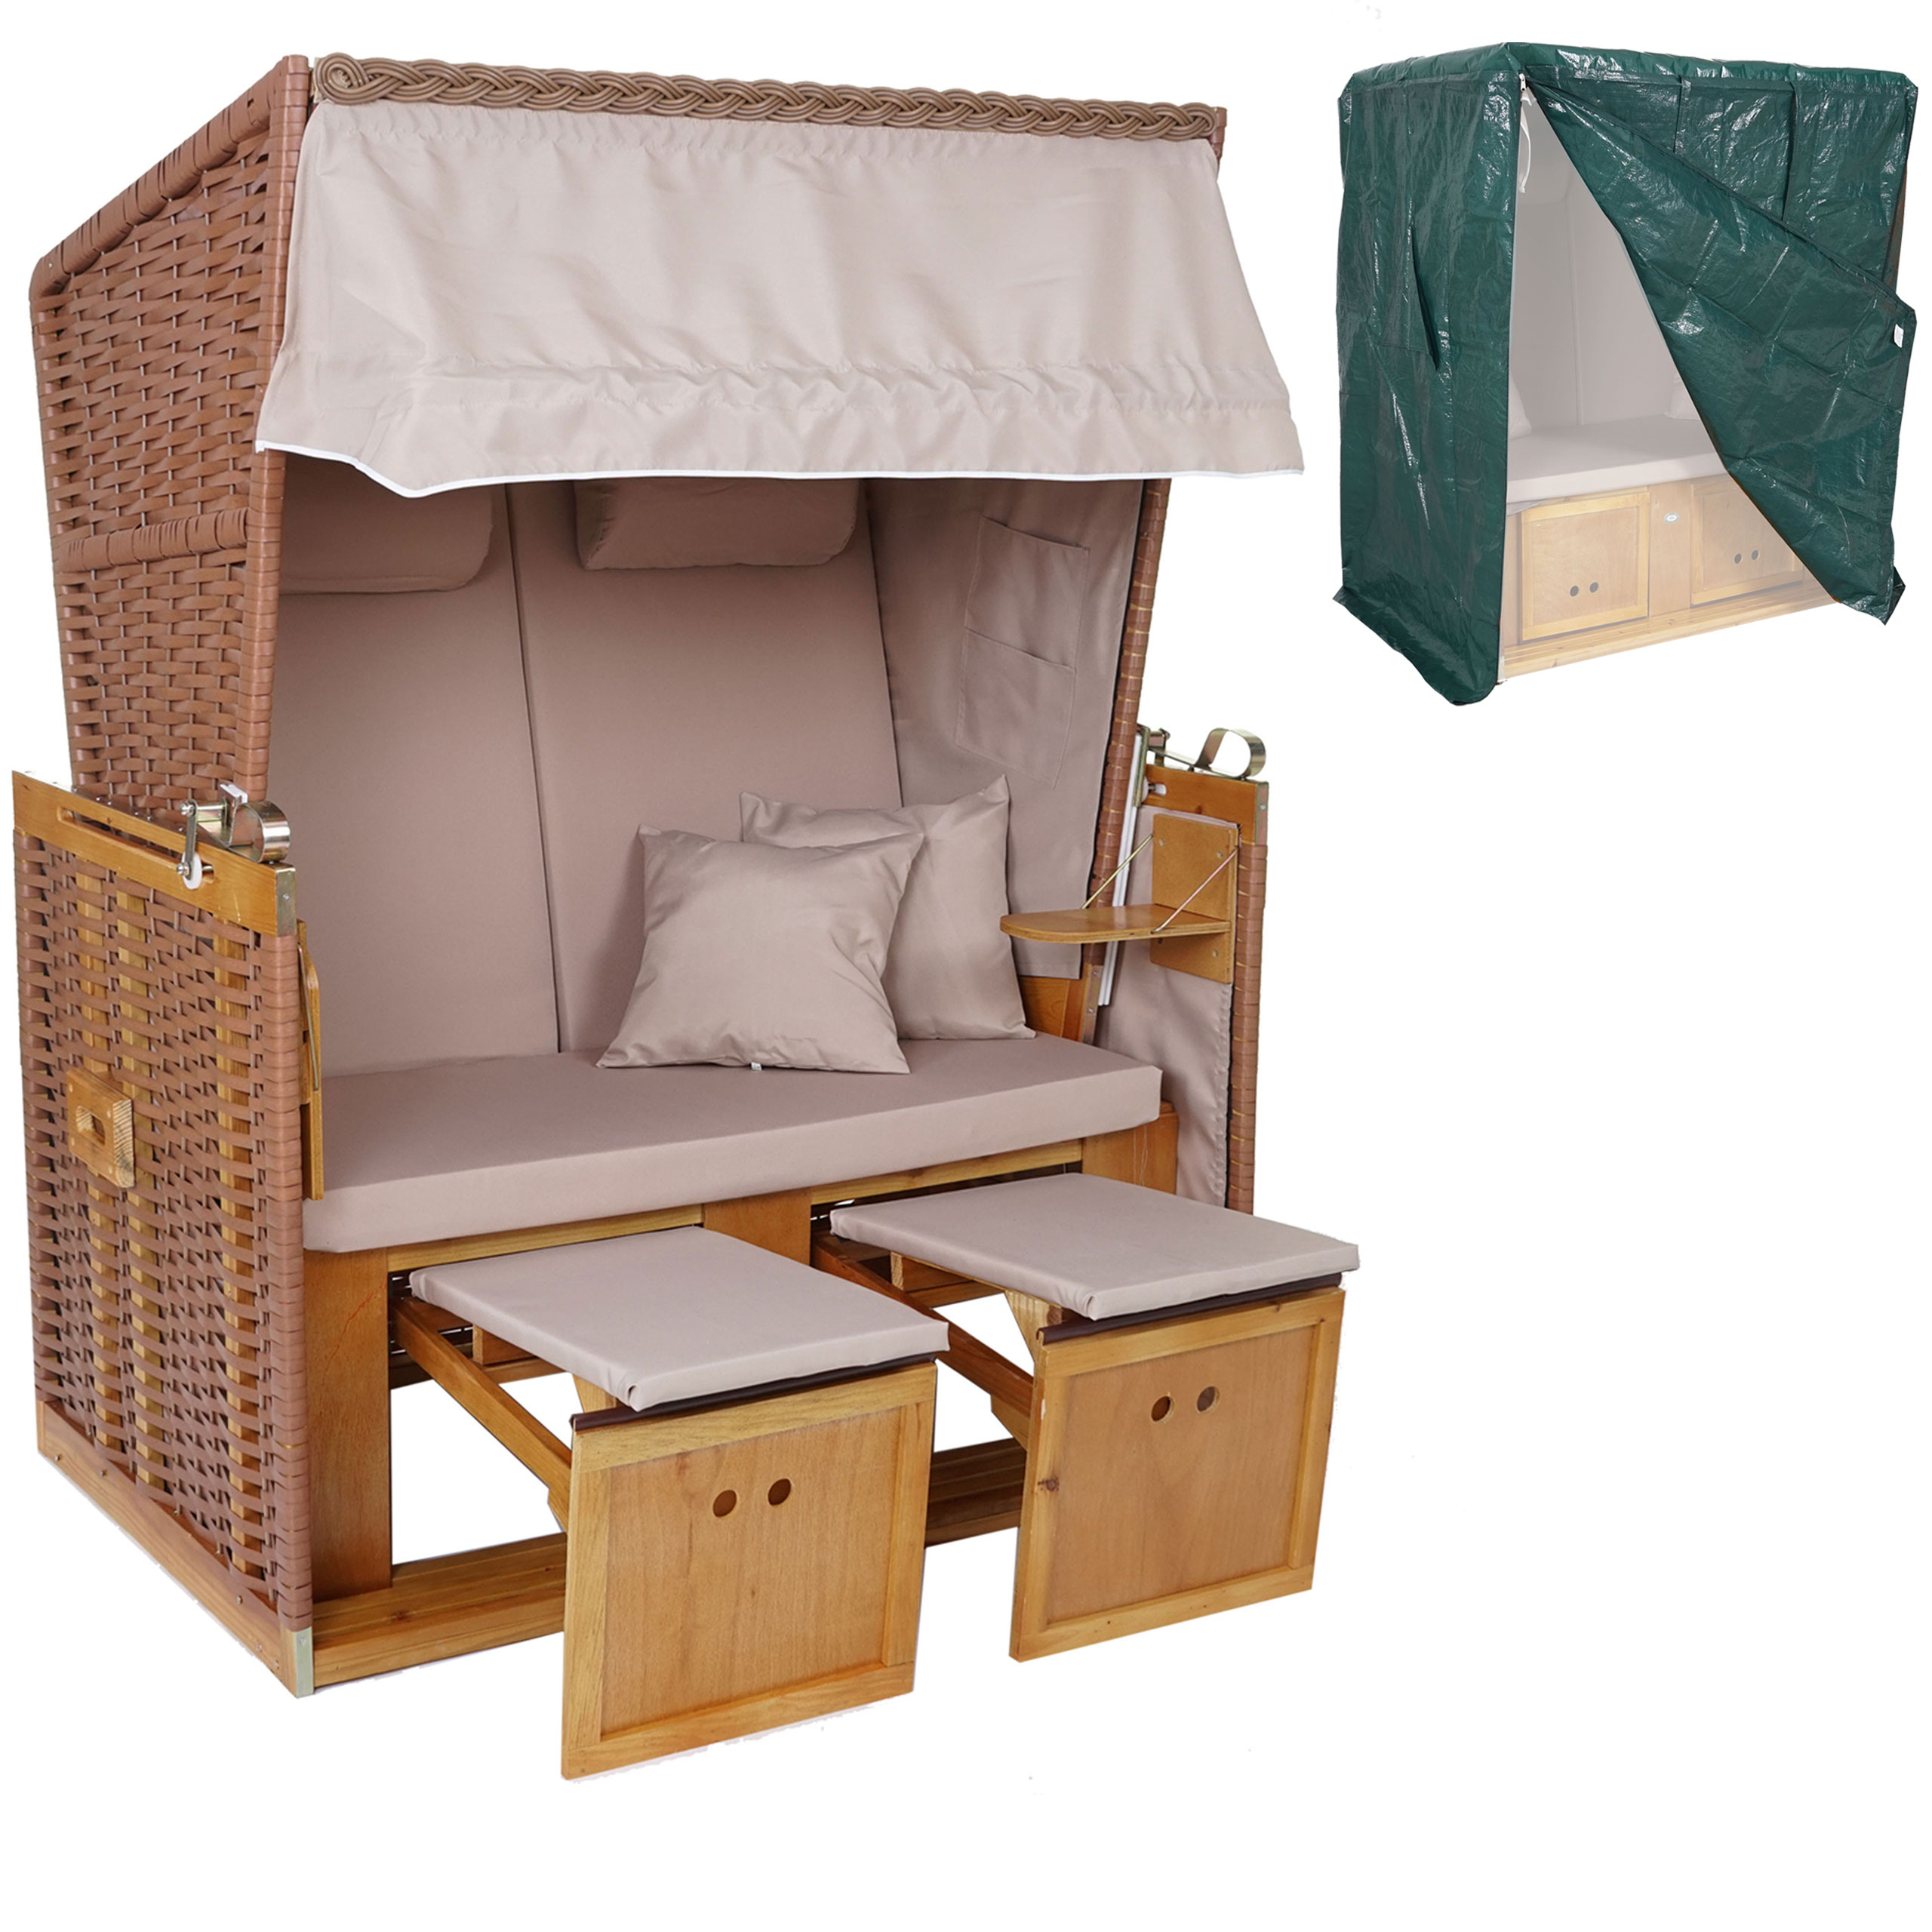 poly rattan strandkorb hwc a11 volllieger ostsee nordsee inkl abdeckung beige. Black Bedroom Furniture Sets. Home Design Ideas